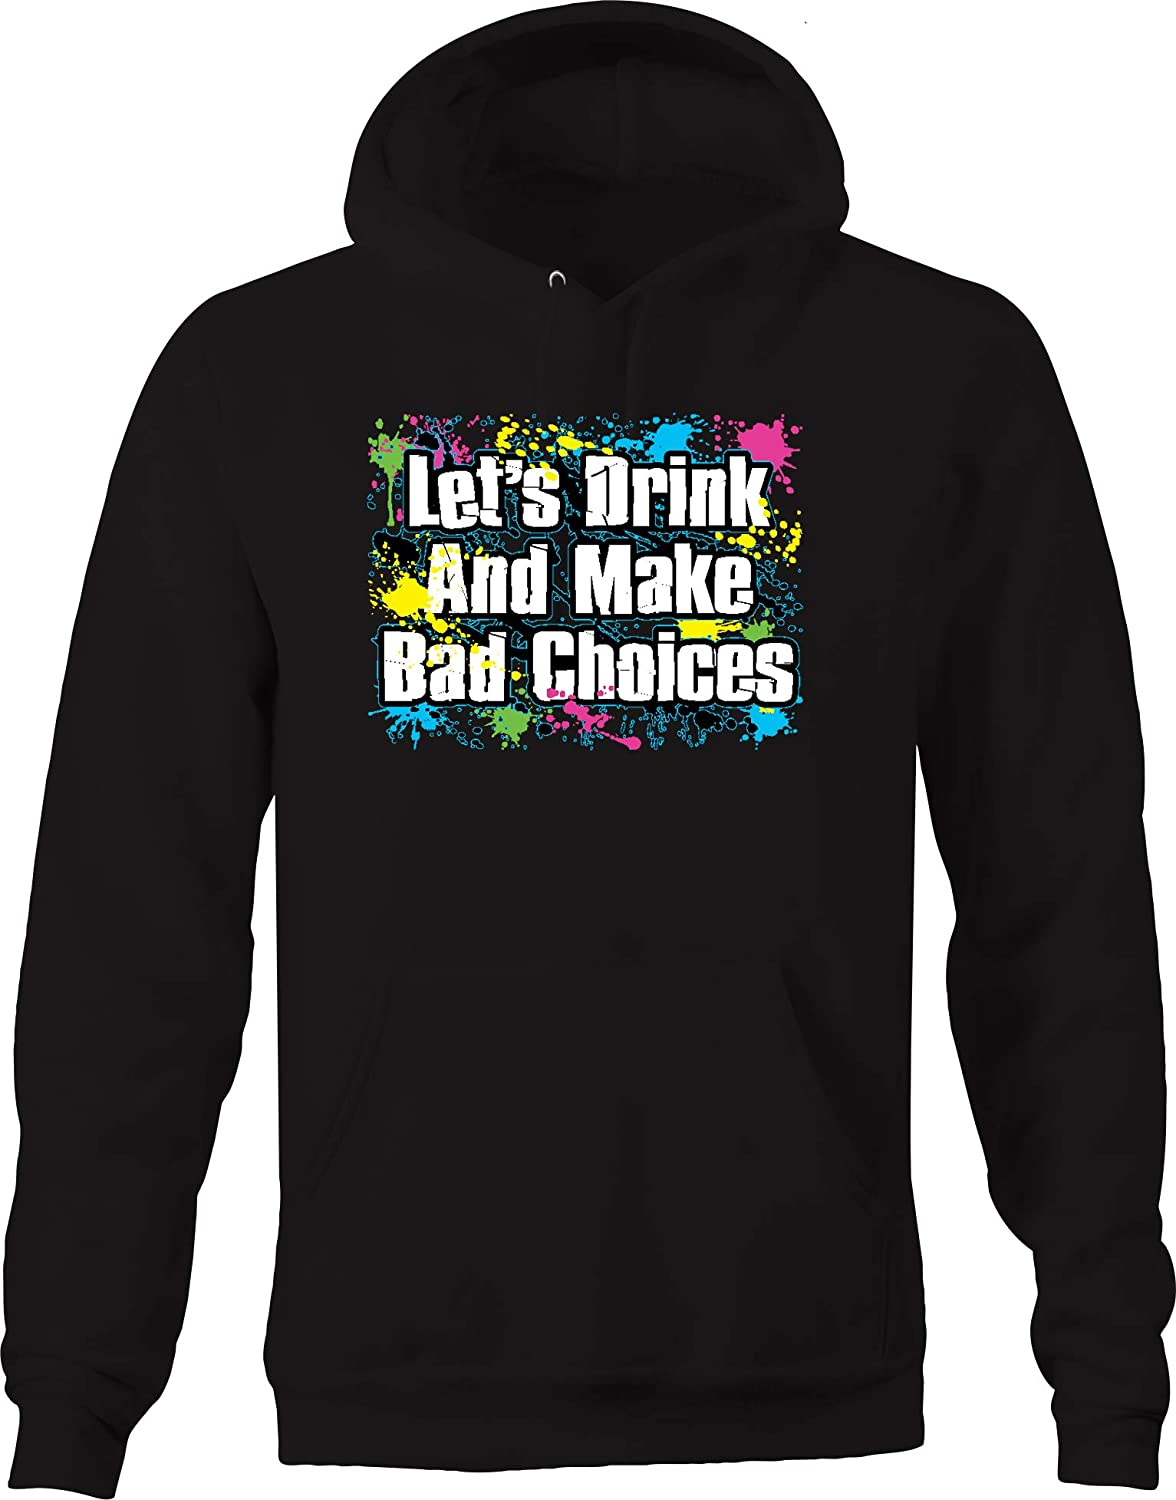 Lifestyle Graphix Lets Drink and Make Bad Choices Splatter Multicolor Paint Fun Joy Hoodies for Men